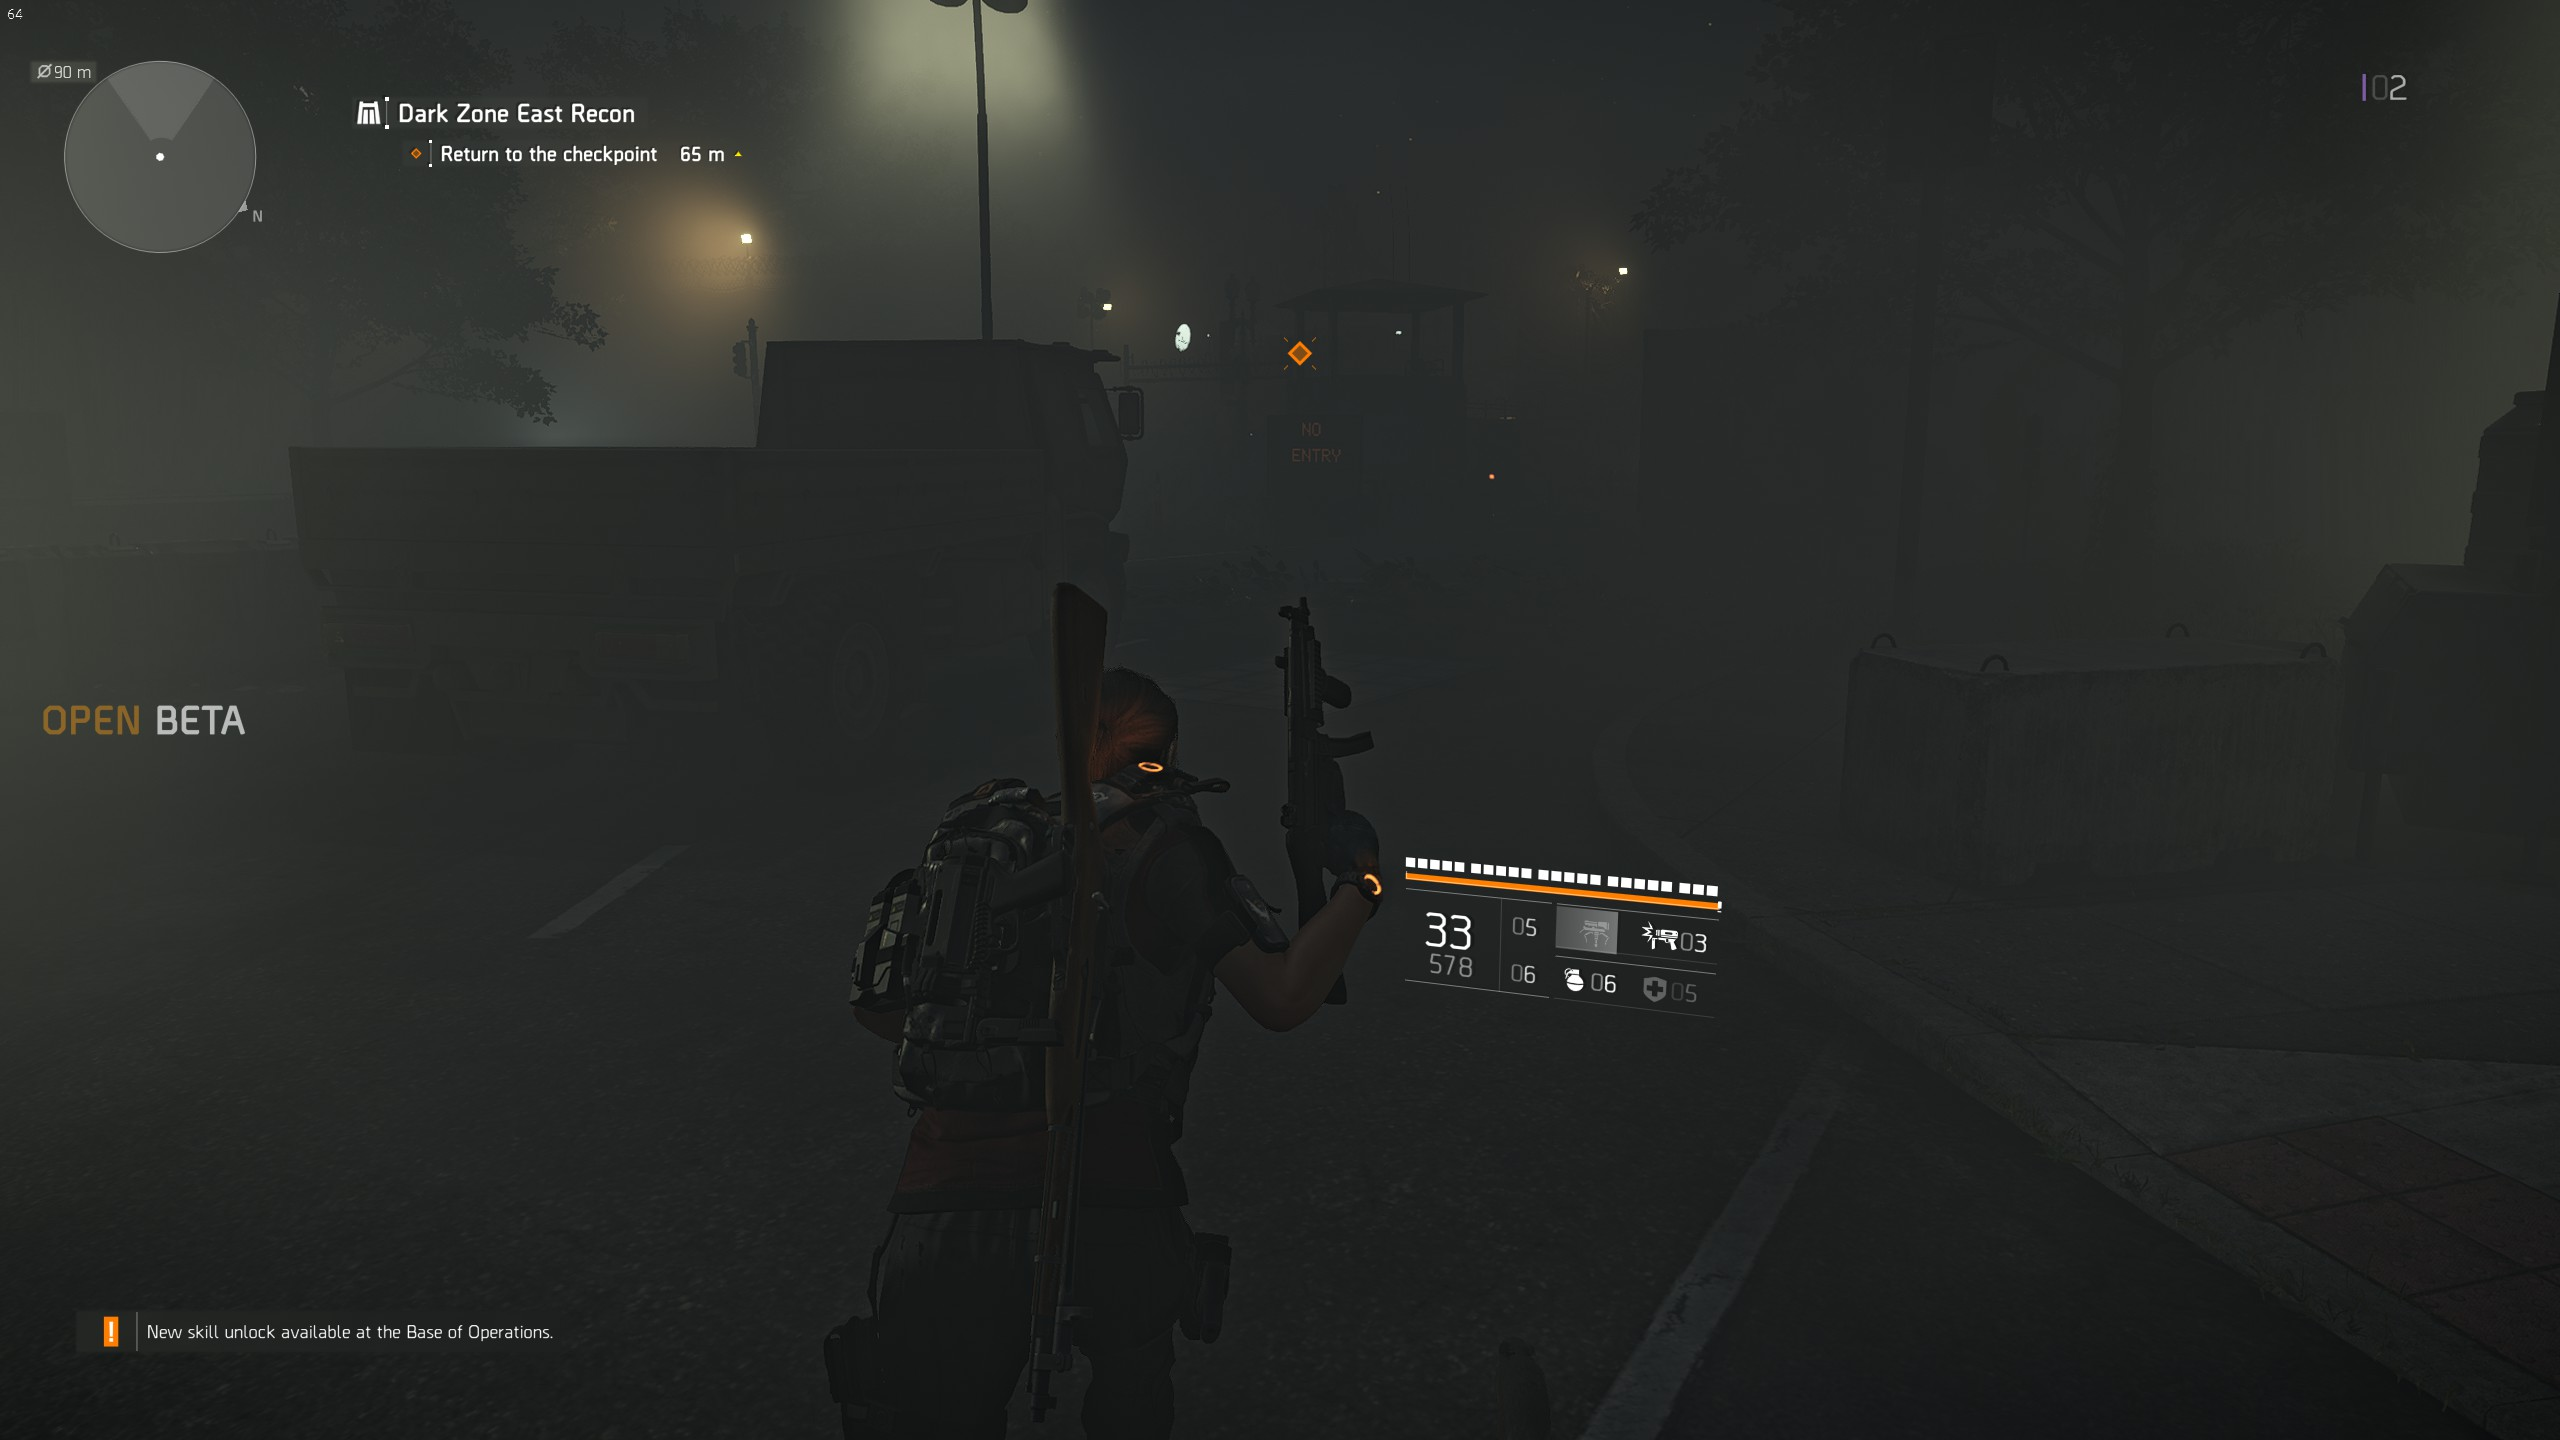 Tom Clancy's The Division 2 - Open Beta2019-3-2-14-16-26.jpg